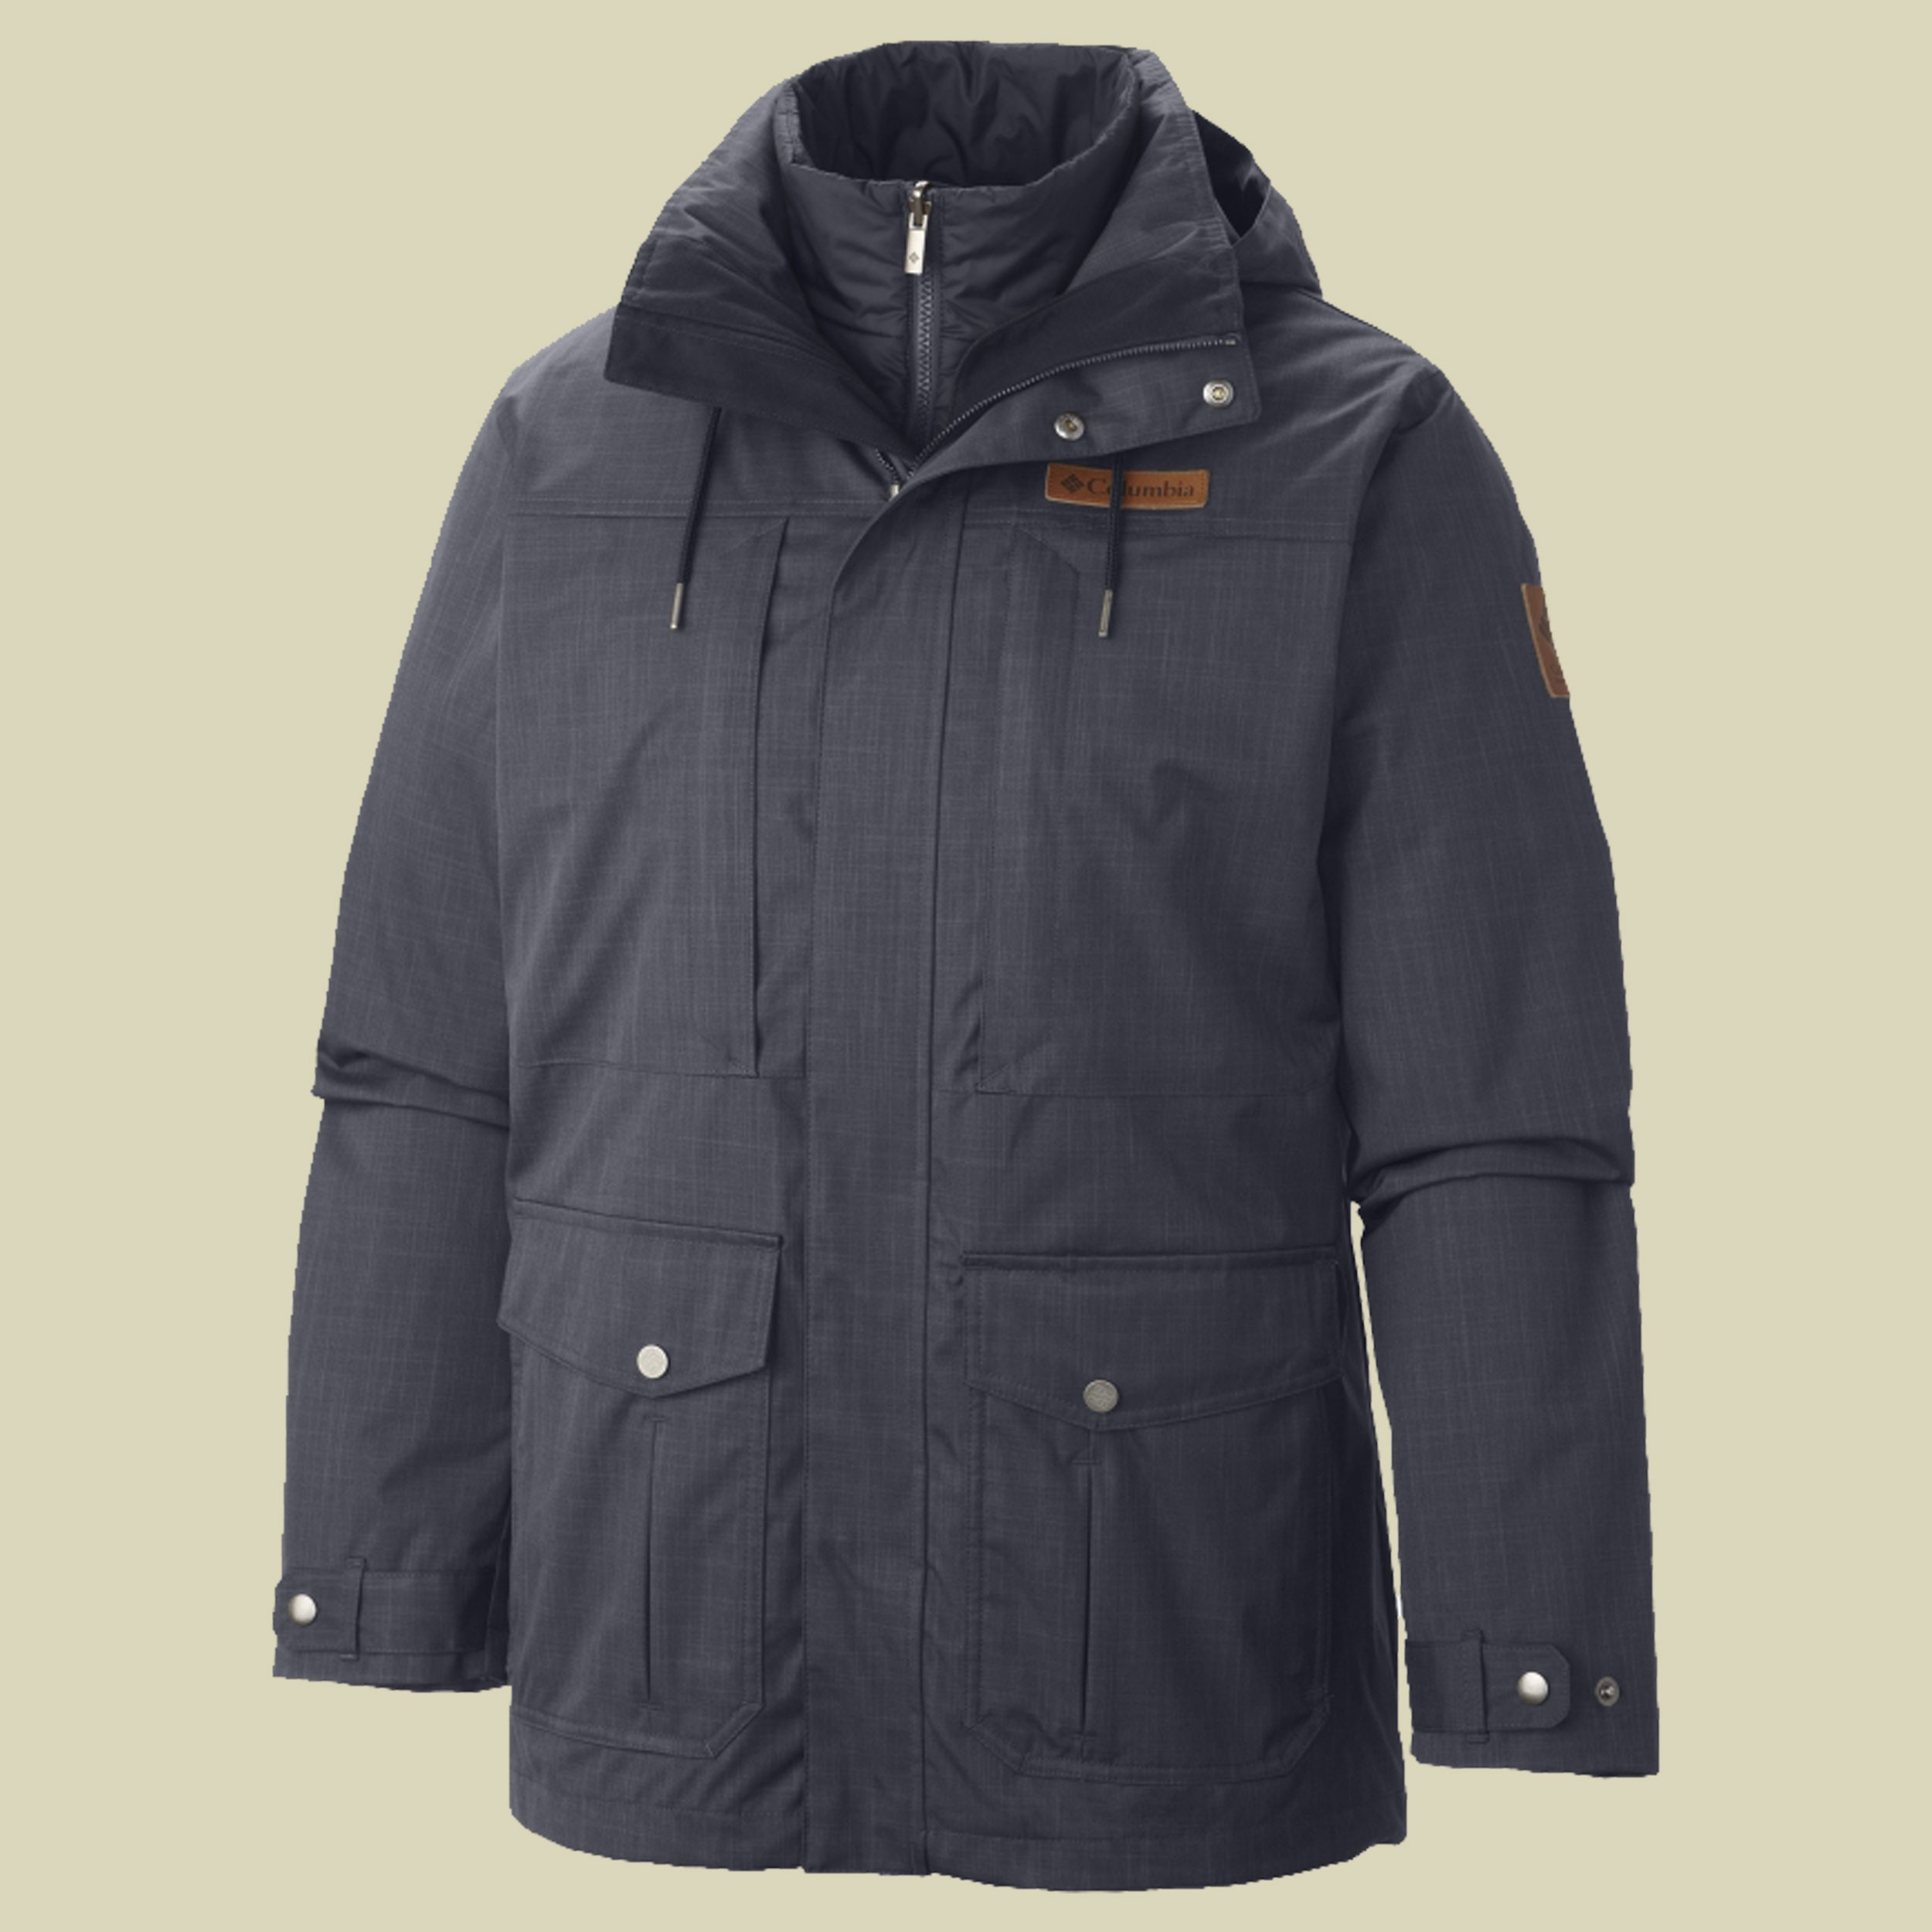 Horizons Pine Interchange Jacket Men